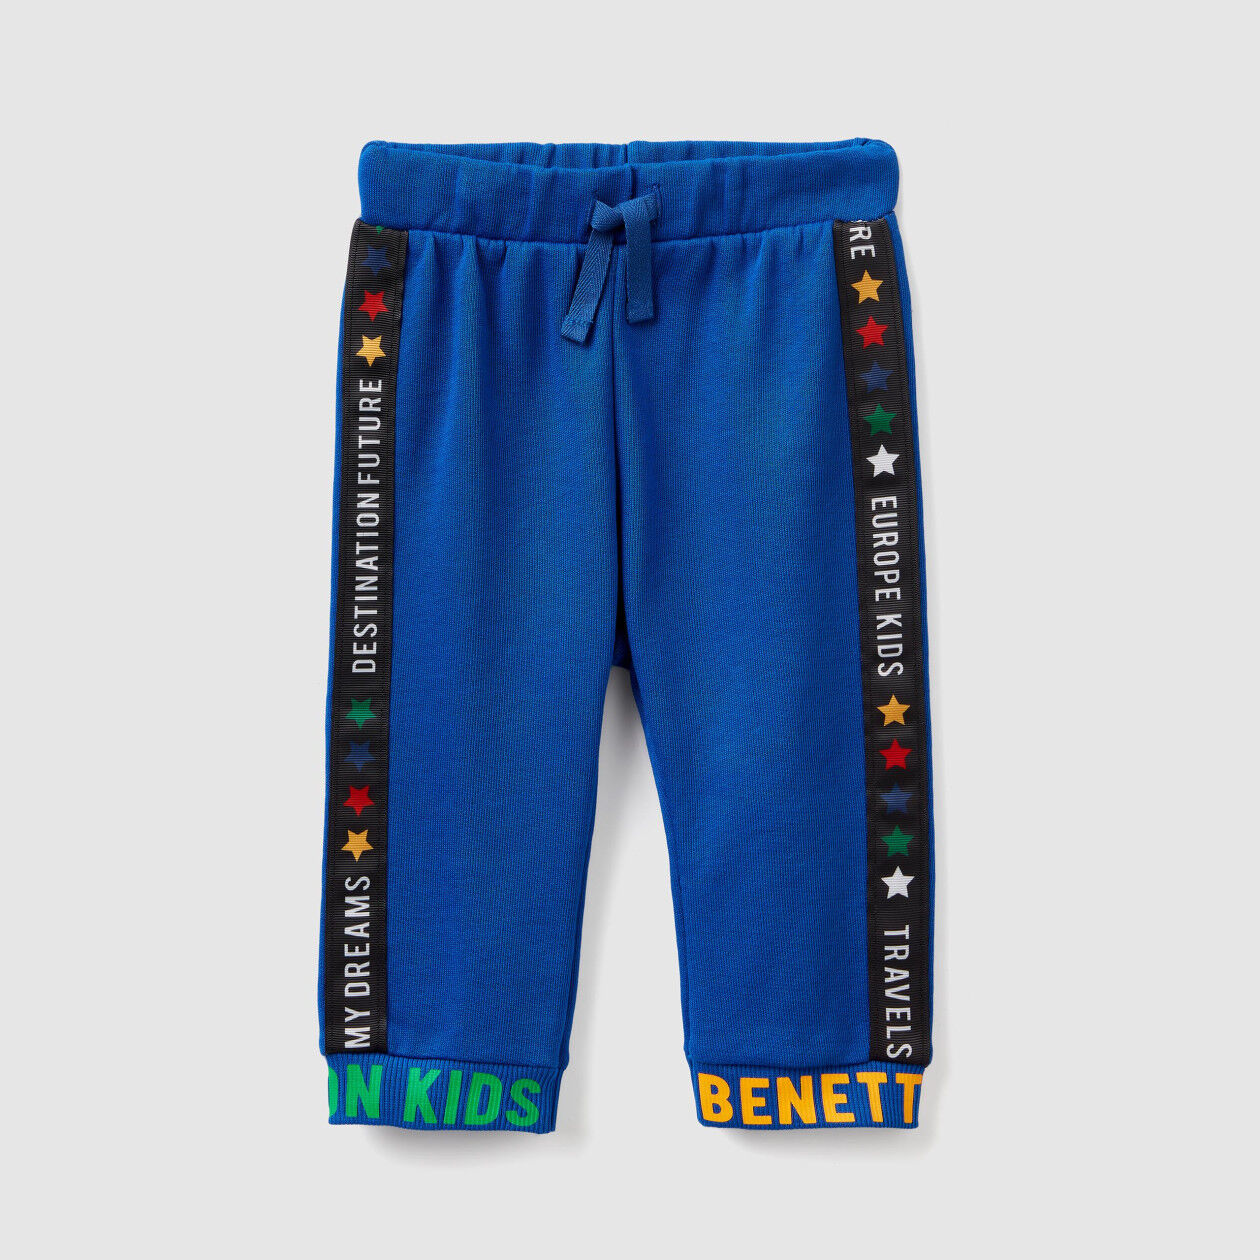 Sweatpants with writing